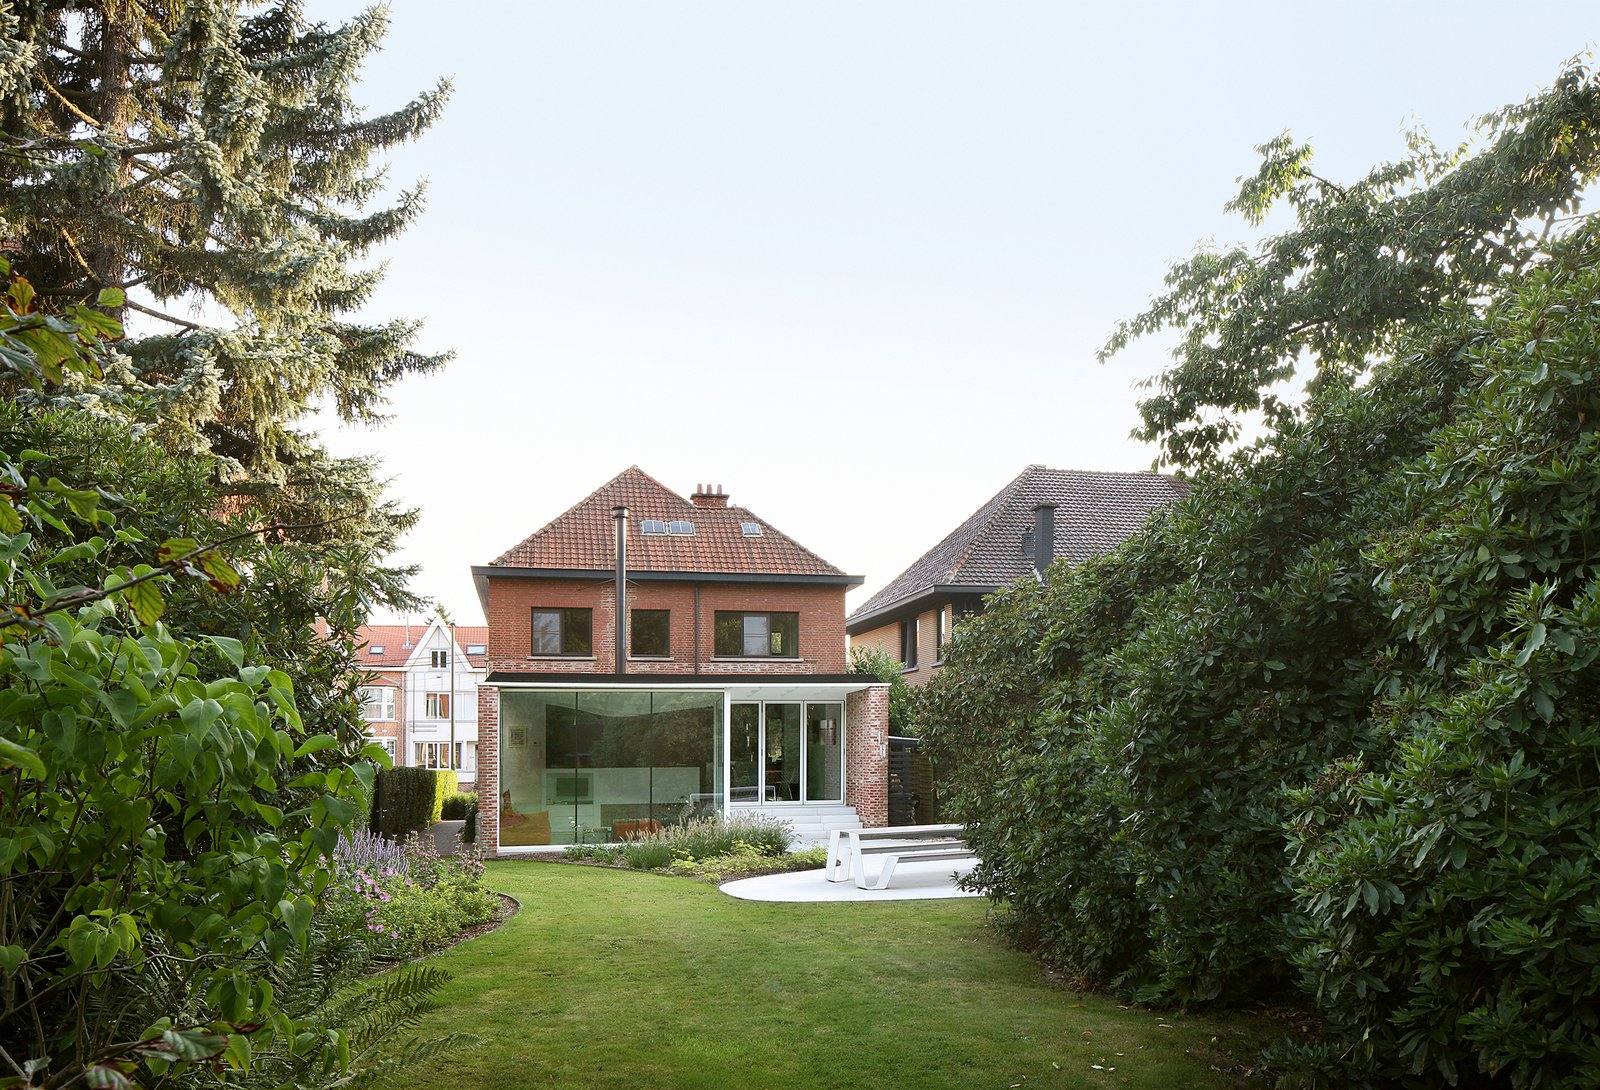 Outdoor, Gardens, Grass, Shrubs, Back Yard, Garden, Small, Flowers, Trees, Hardscapes, and Concrete New addition from outdoor garden  Best Outdoor Flowers Garden Photos from Leuven Residential Addition